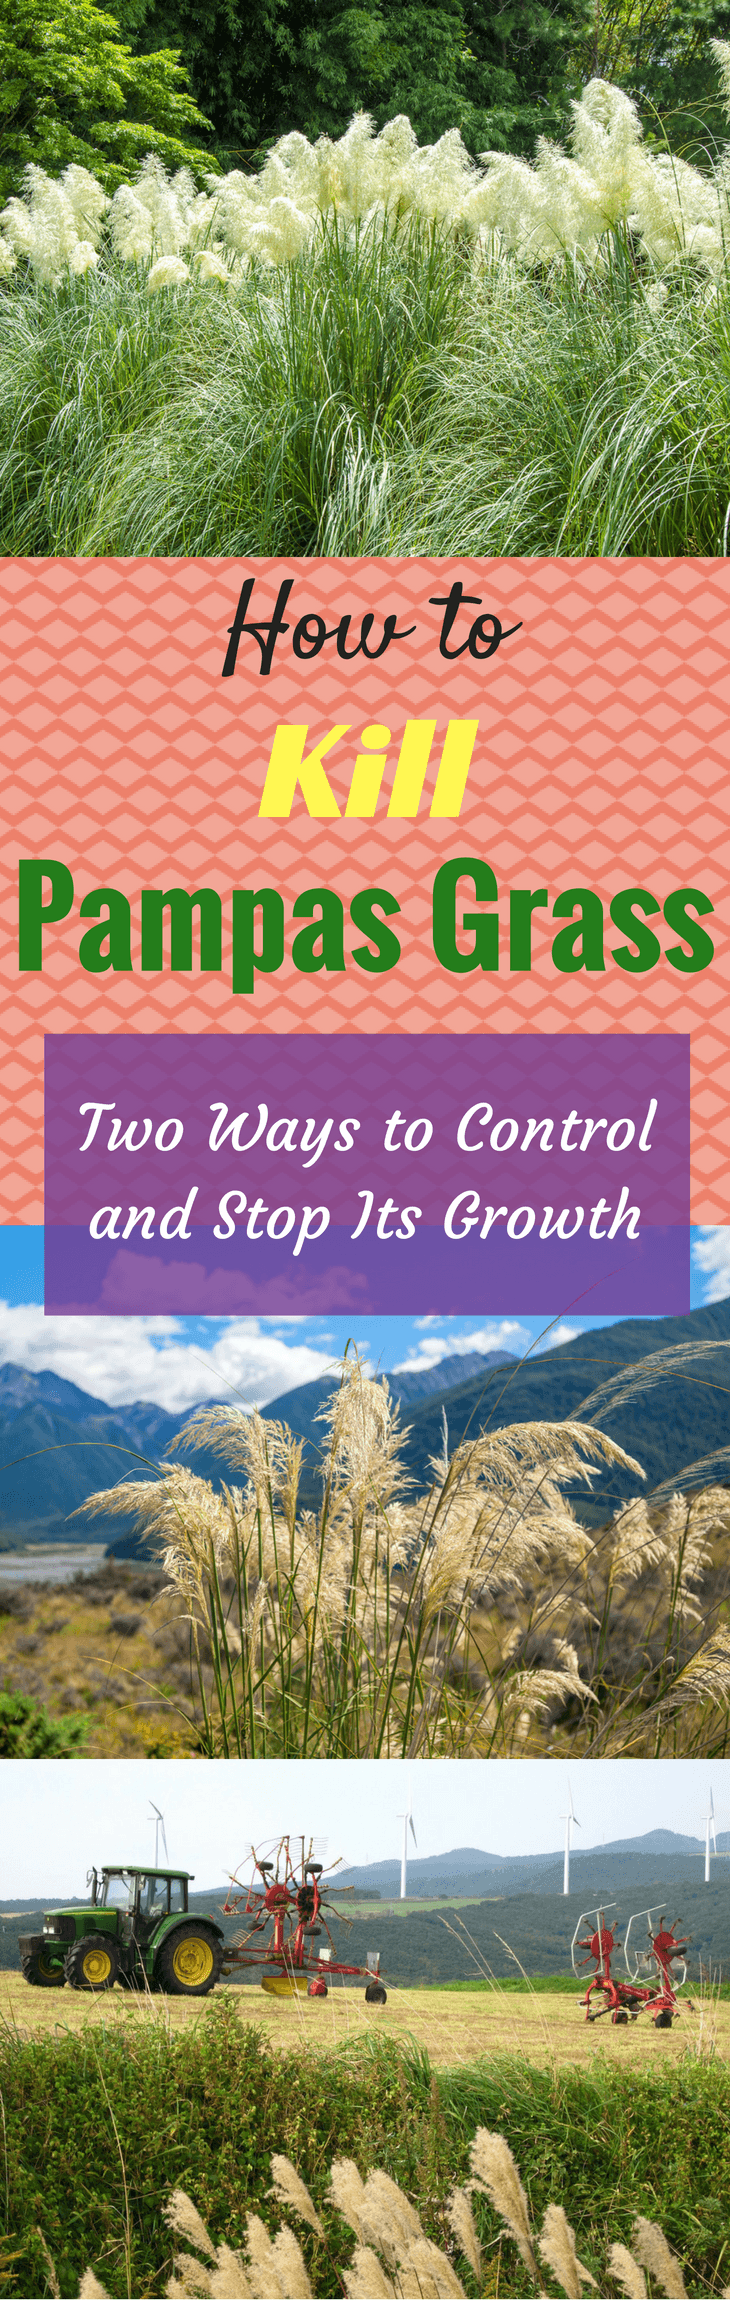 How to Kill Pampas Grass Two Ways to Control and Stop Its Growth